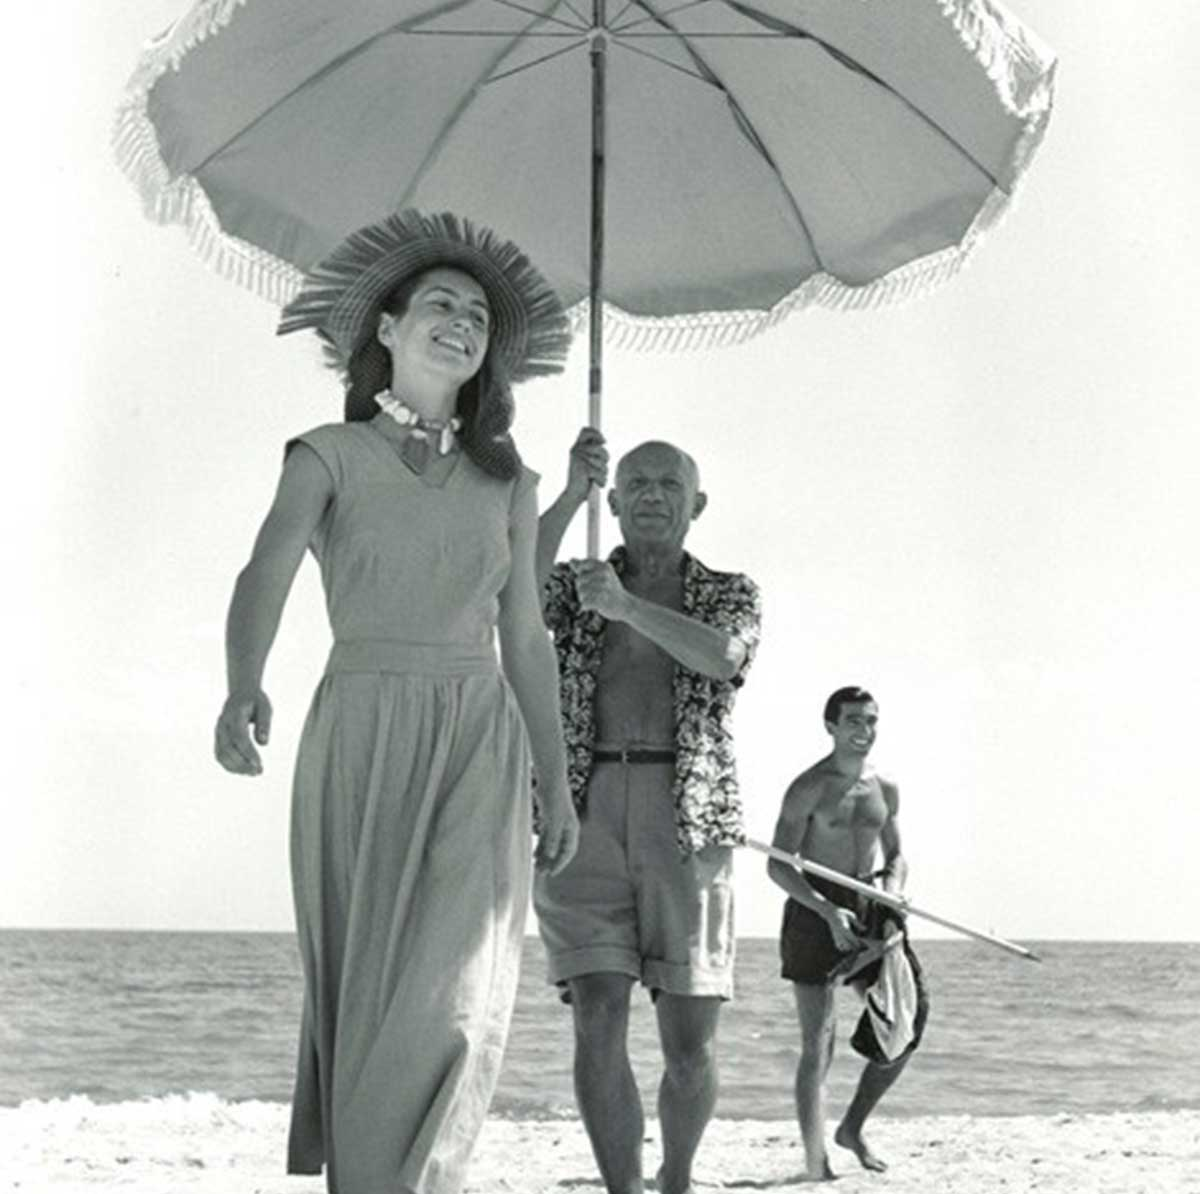 Pablo-Picasso-and--Francoise-Gilot,-Golfe-Juan,-France,-August-1948 - Robert capa